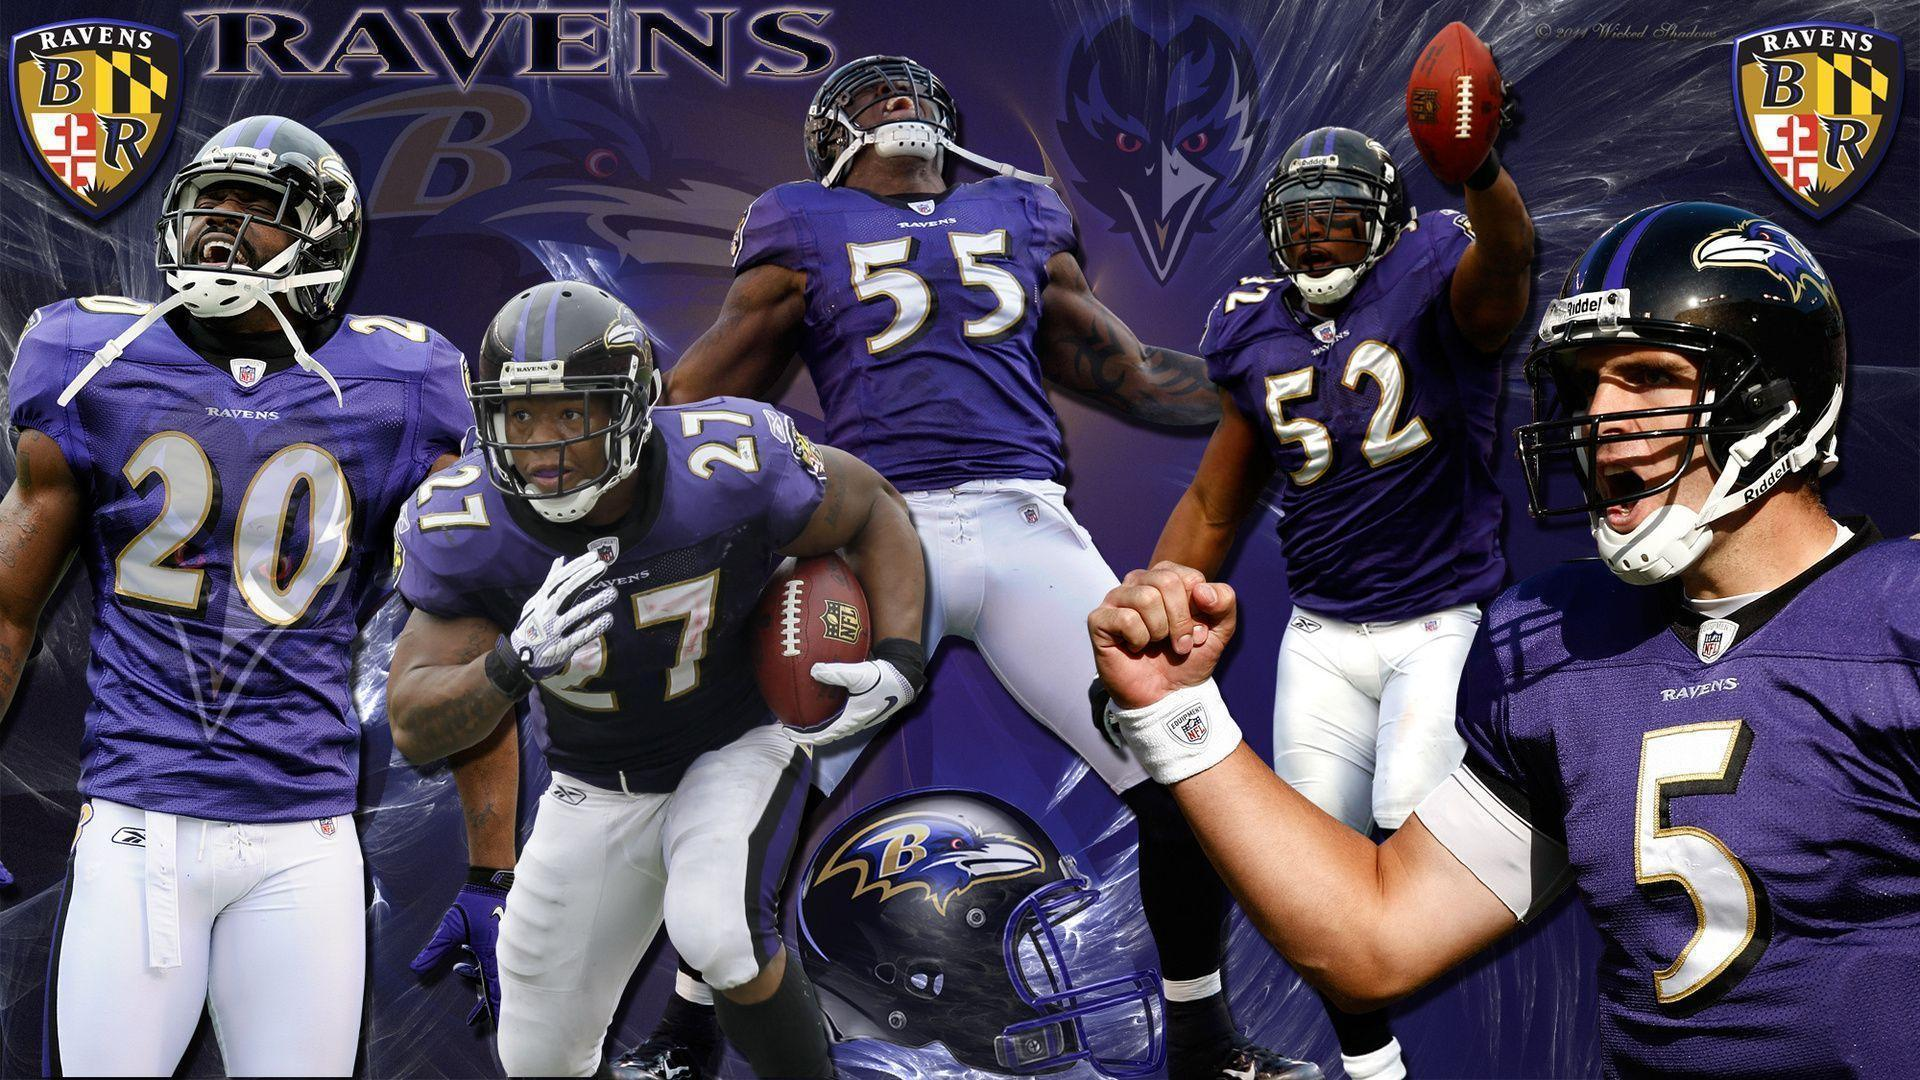 1920x1080 Nfl, Baltimore Ravens Team Players, American Football